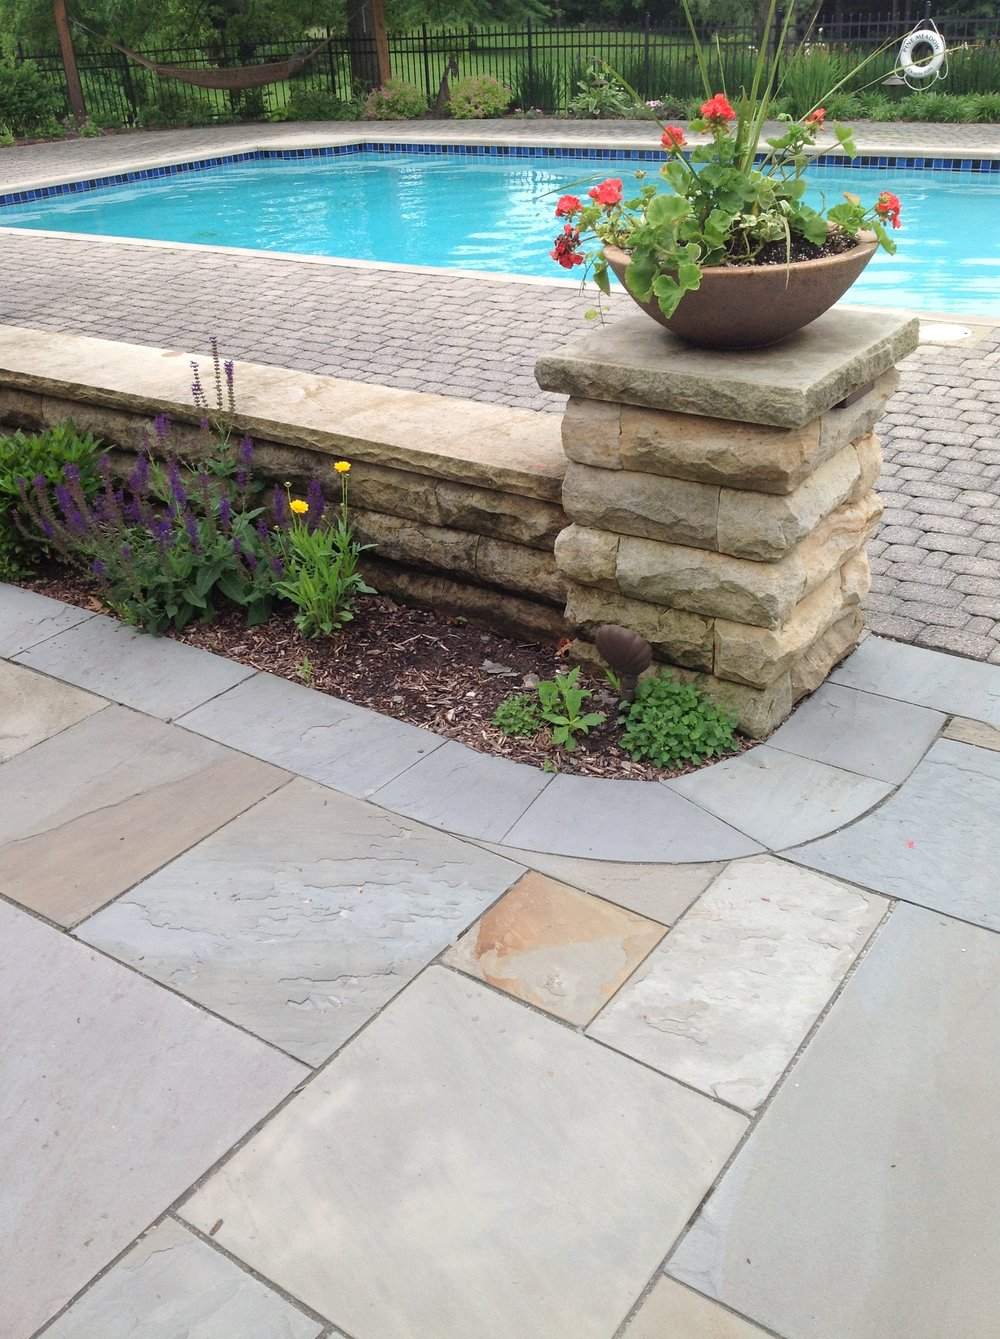 Unilock landscaping companies with top patio pavers and retaining wall in Hudson, OH